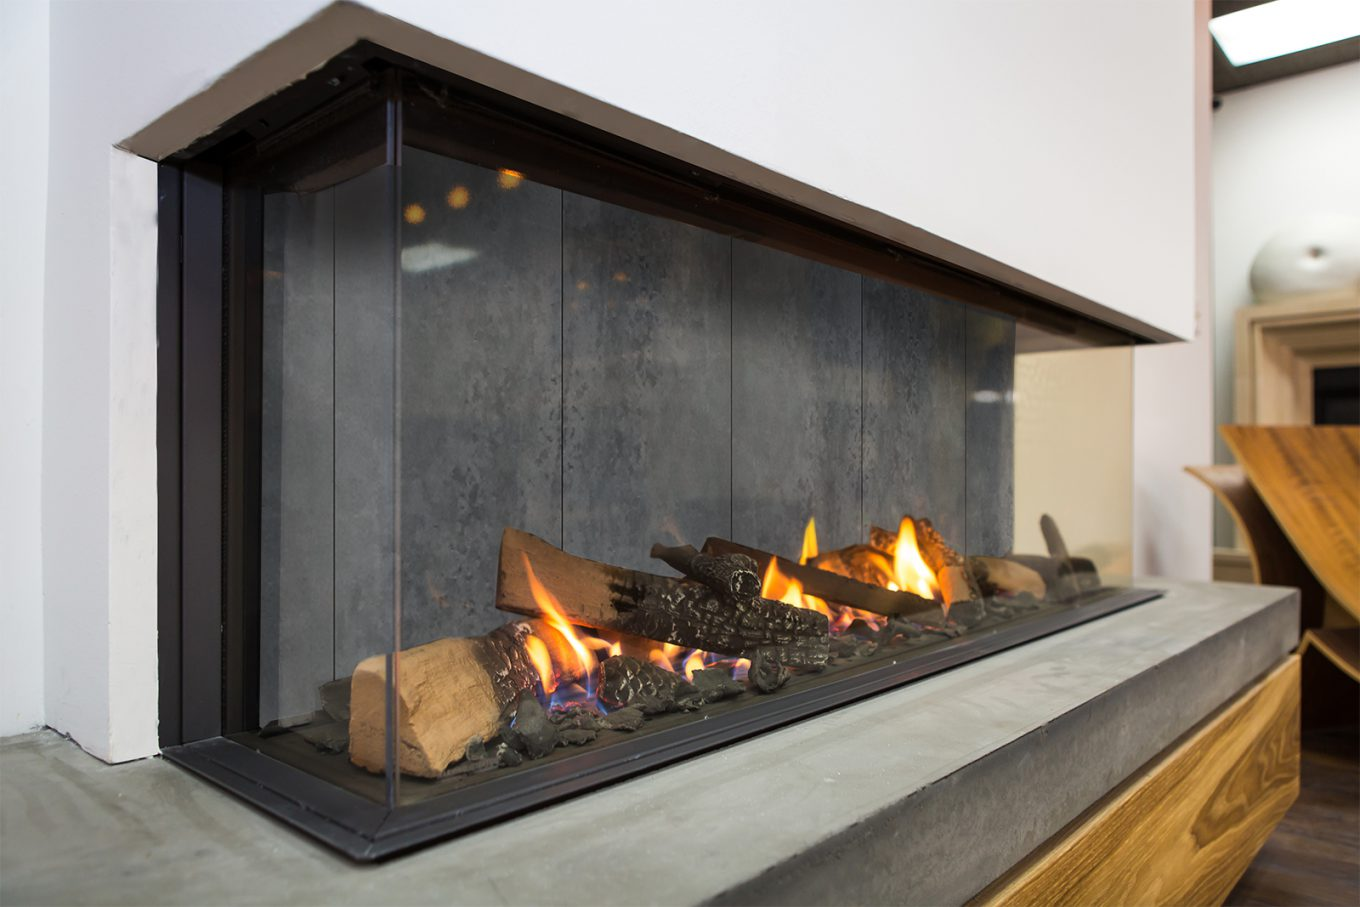 Contemporary Fireplace Market Segmentation by Types, Top Manufacturers, Applications and Forecast by 2025